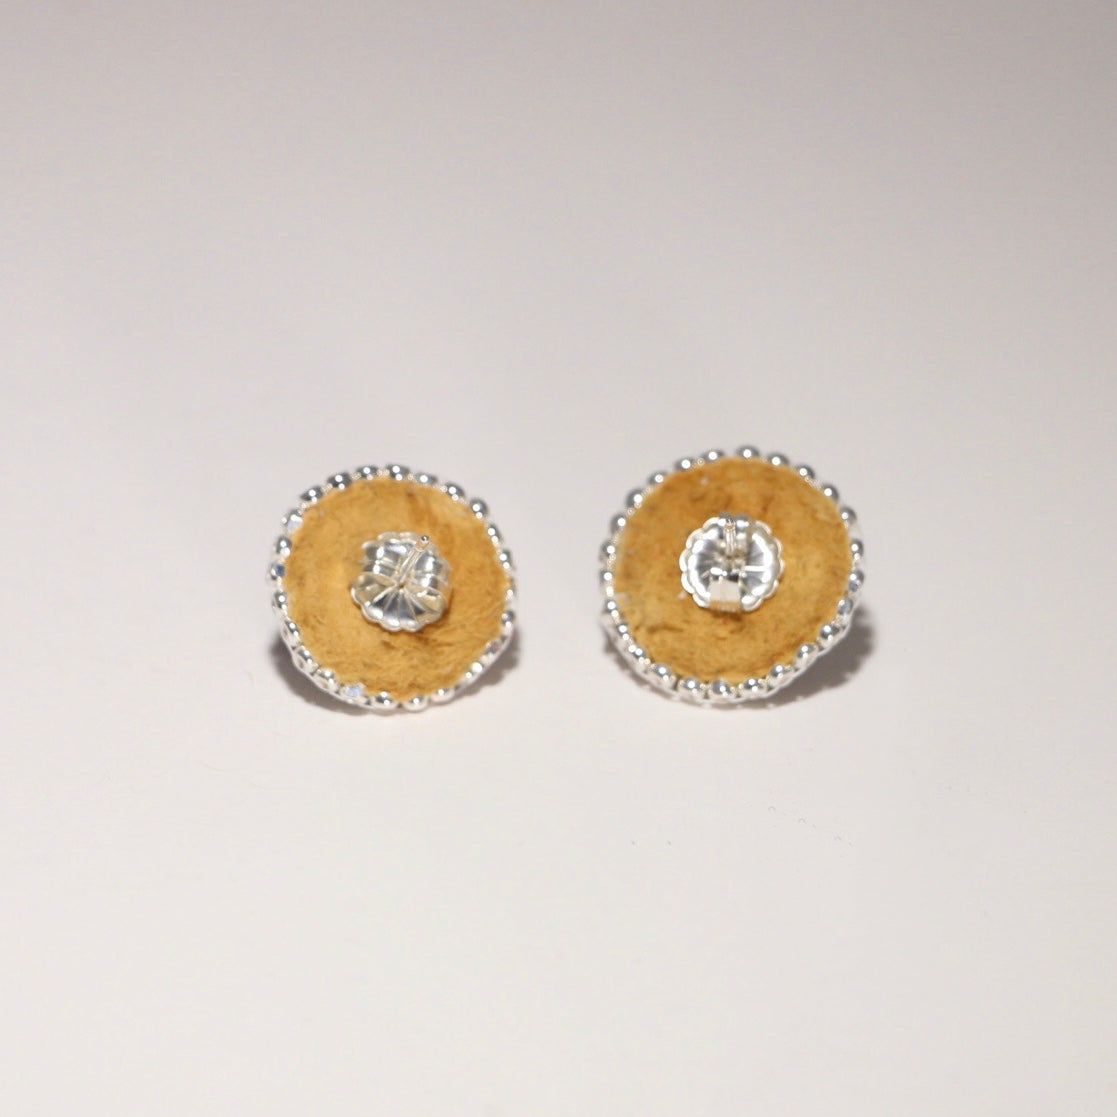 Caribou Tufted and Beaded Studs - White & Black